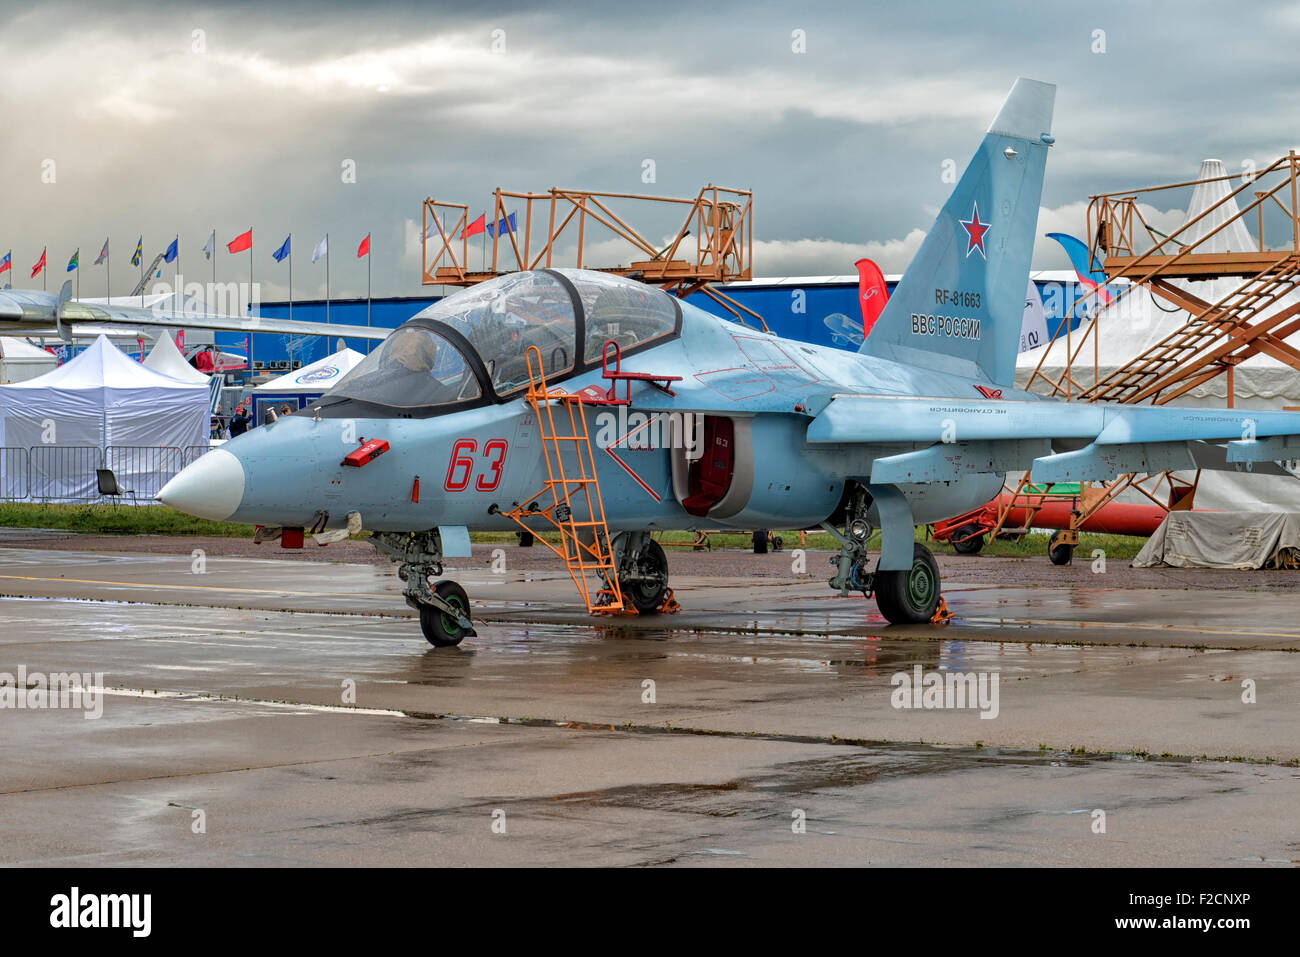 Yakovlev Yak-130 at MAKS 2015 Air Show in Moscow, Russia - Stock Image